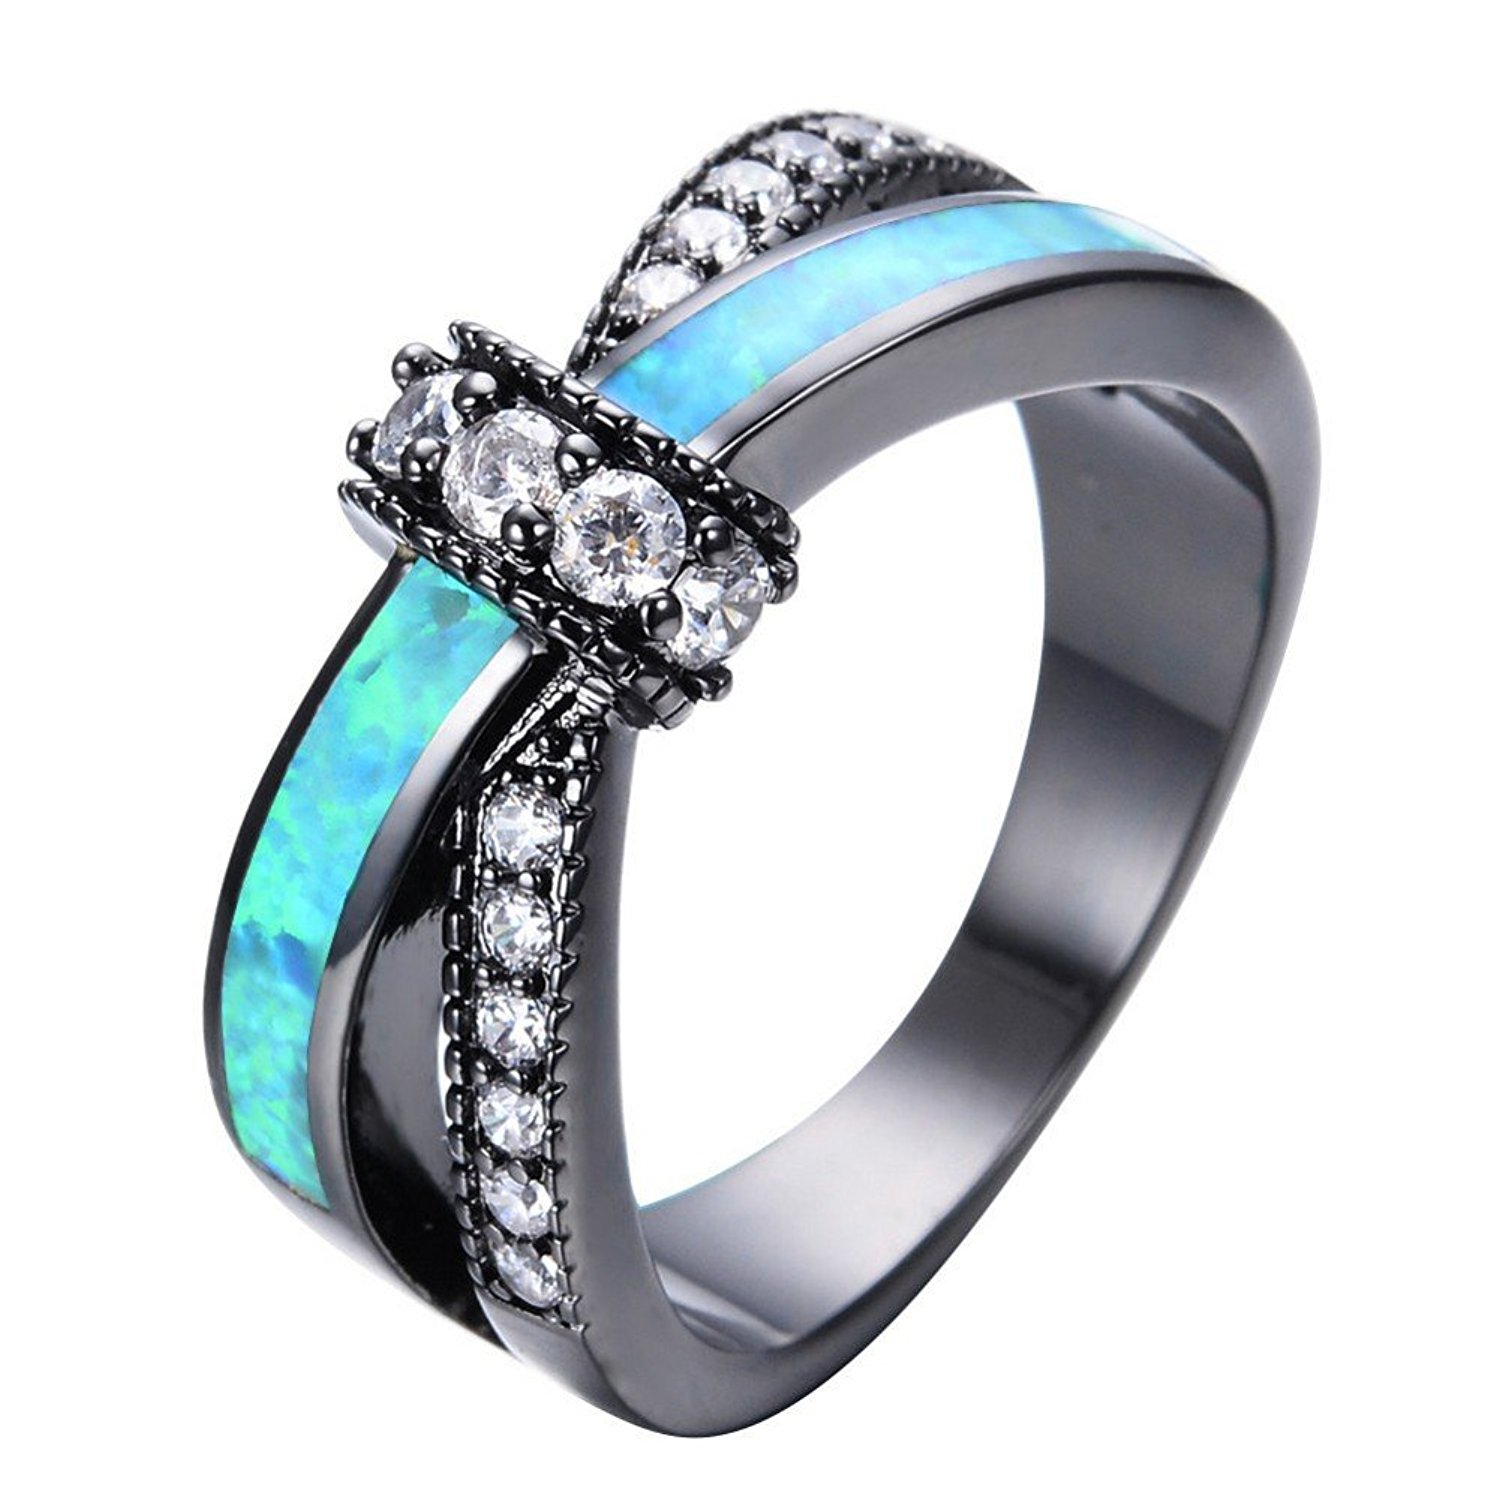 PSRINGS Unique Jewelry Blue Fire Opal Rings Male Black Gold Filled Crossed Shape Wedding Party Zircon Promise Ring